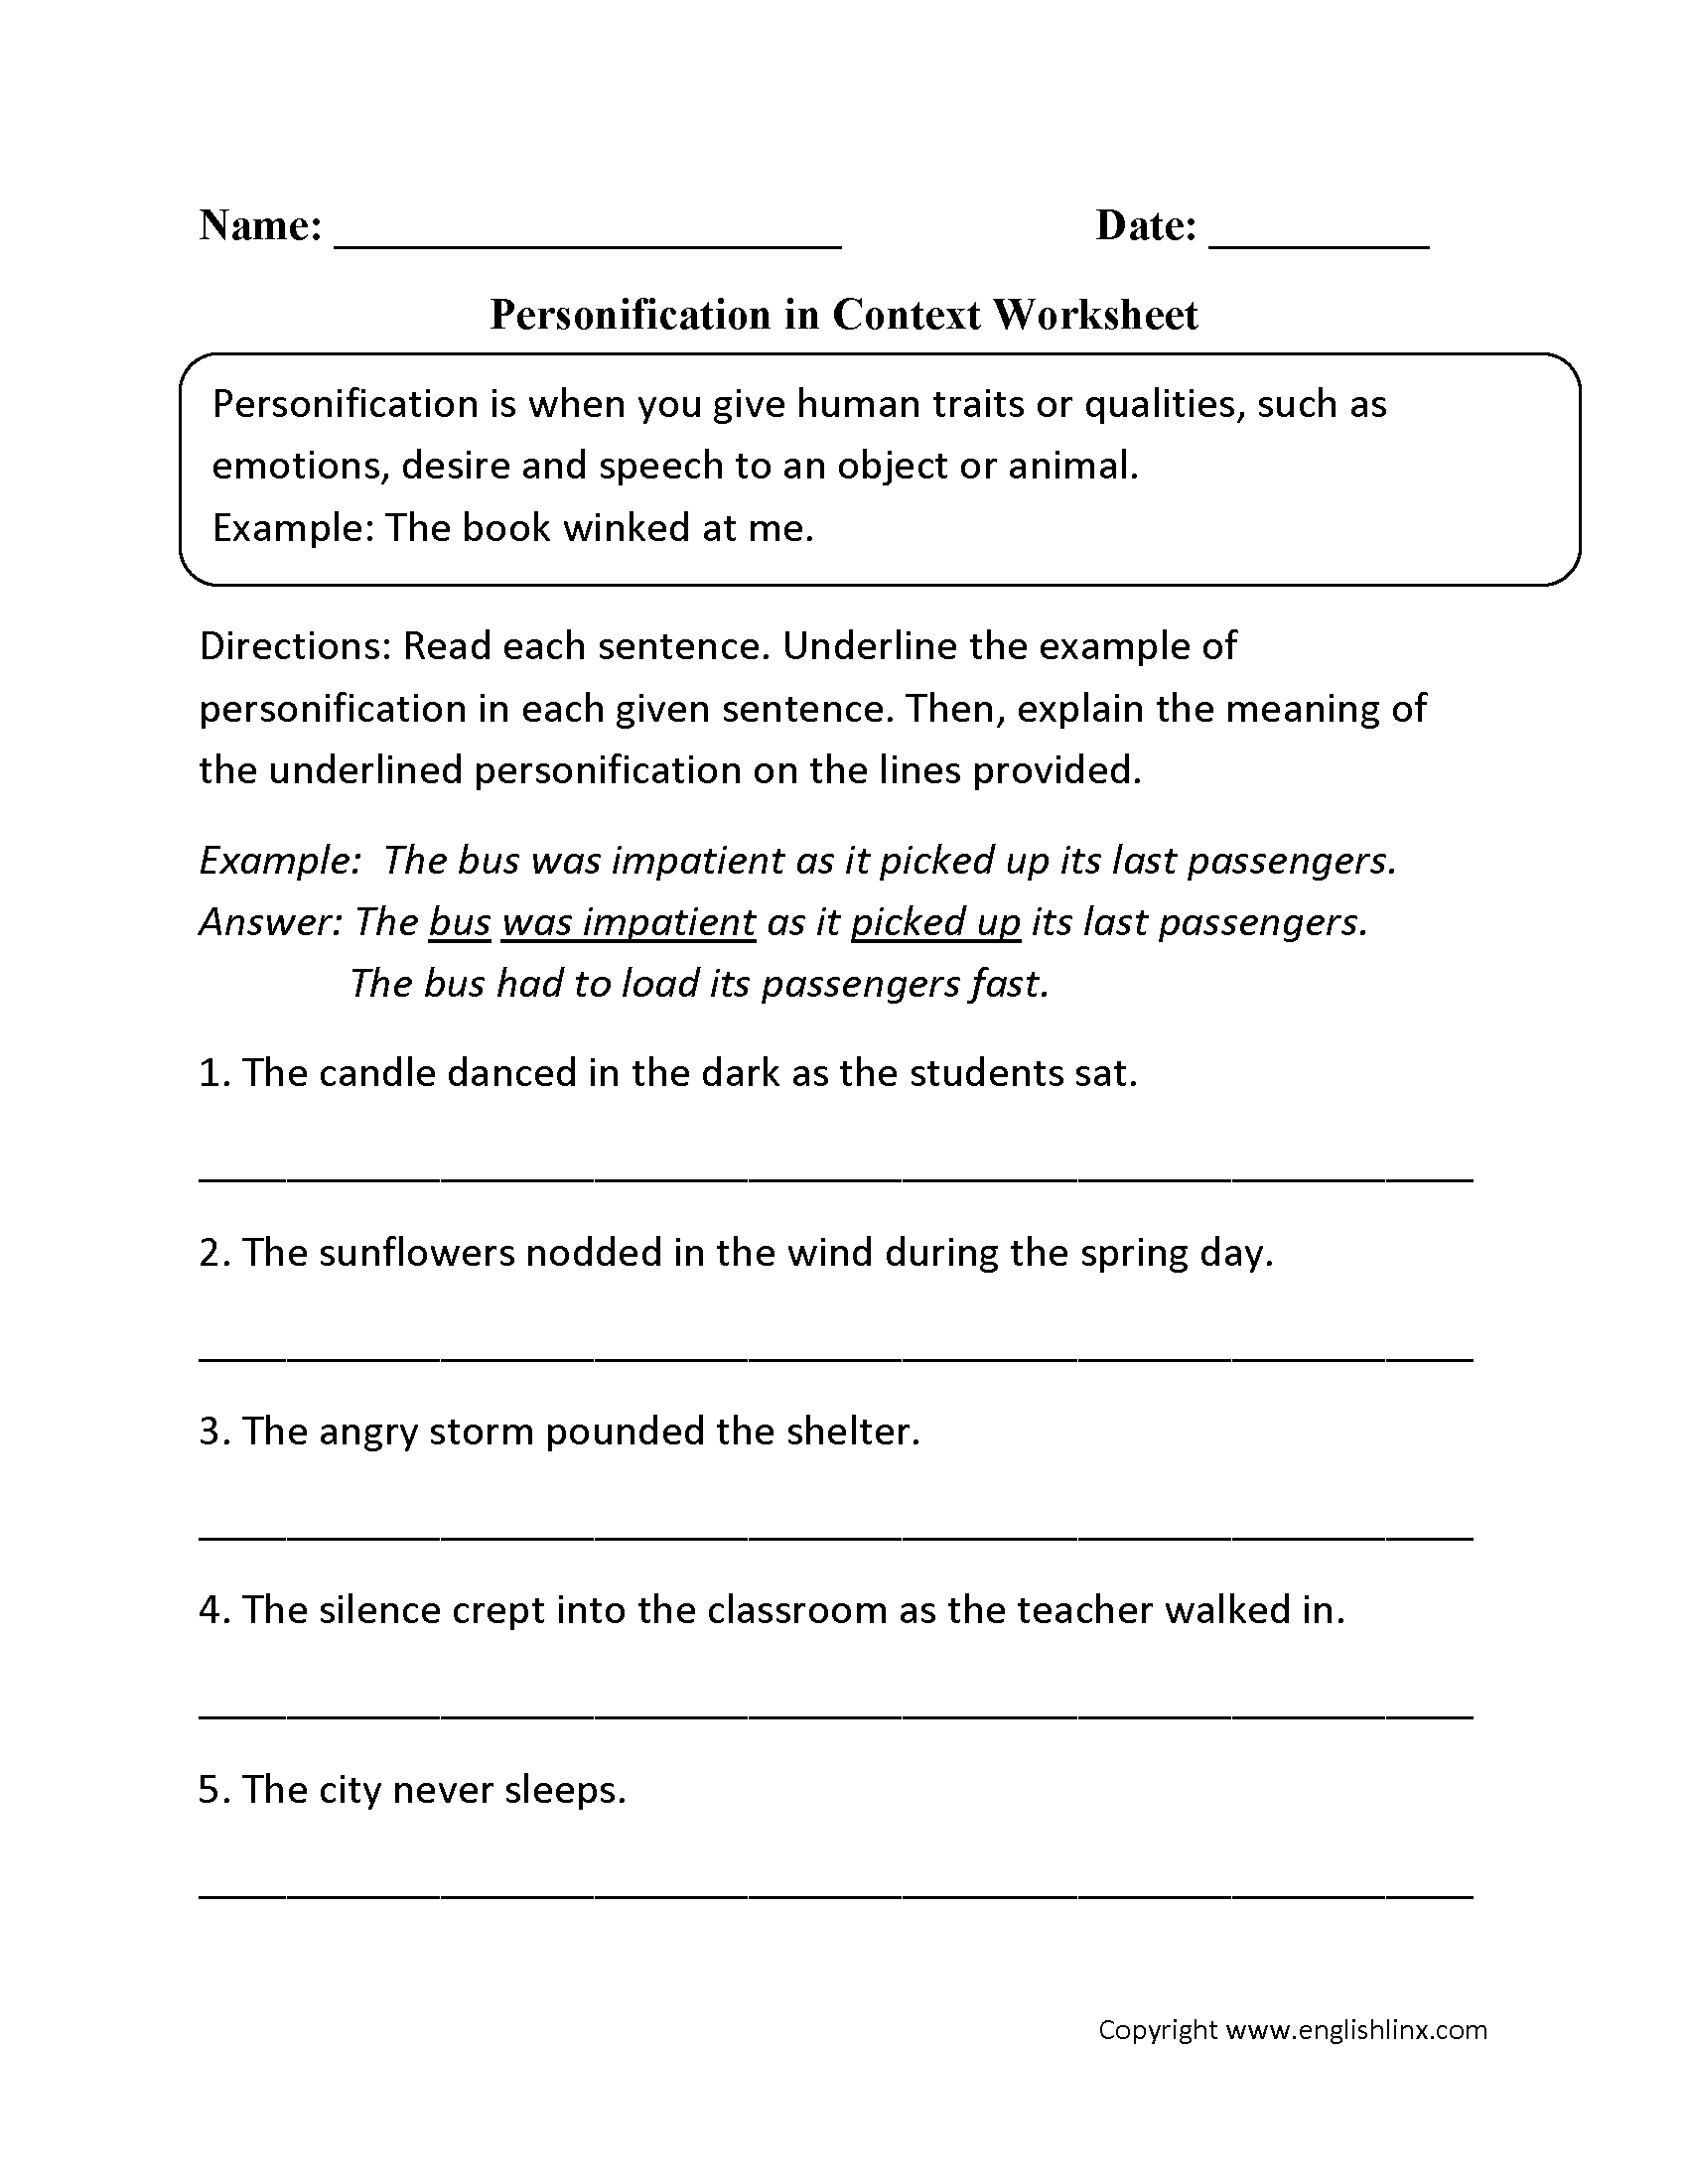 content by subject worksheets figurative language worksheets personification figurative language worksheets